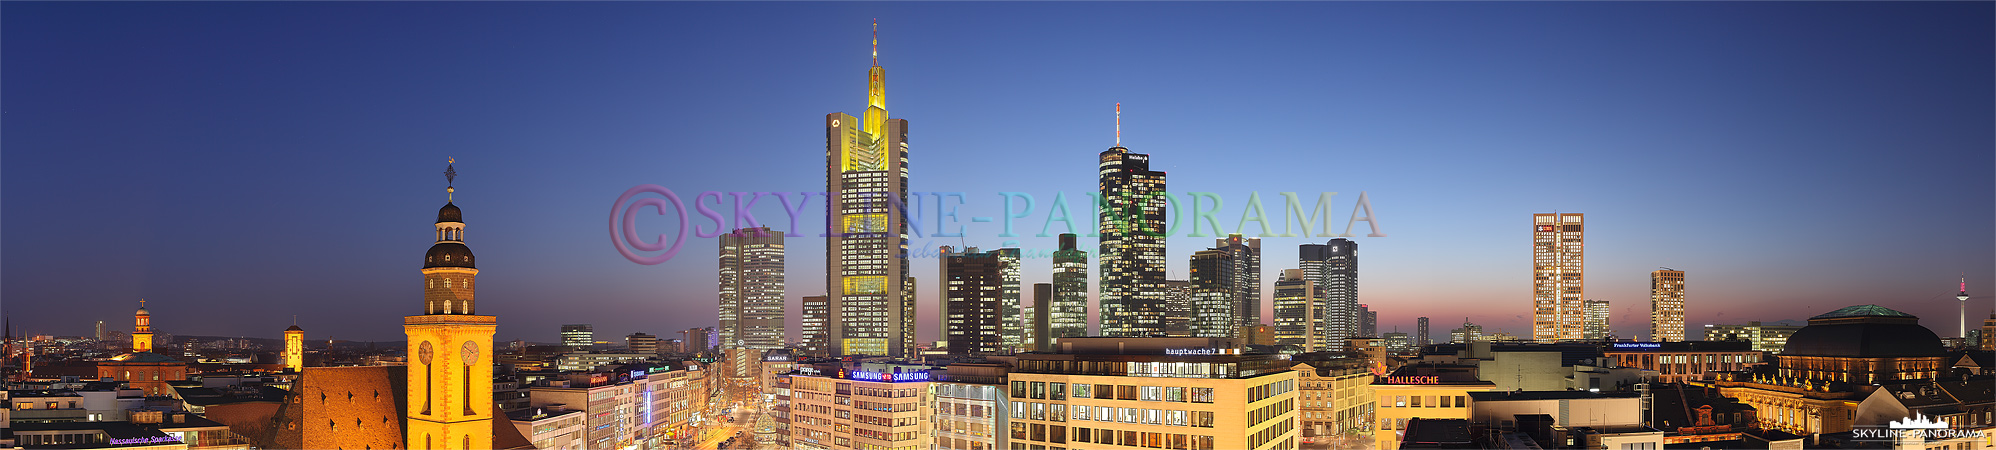 frankfurt p 00447 skyline. Black Bedroom Furniture Sets. Home Design Ideas